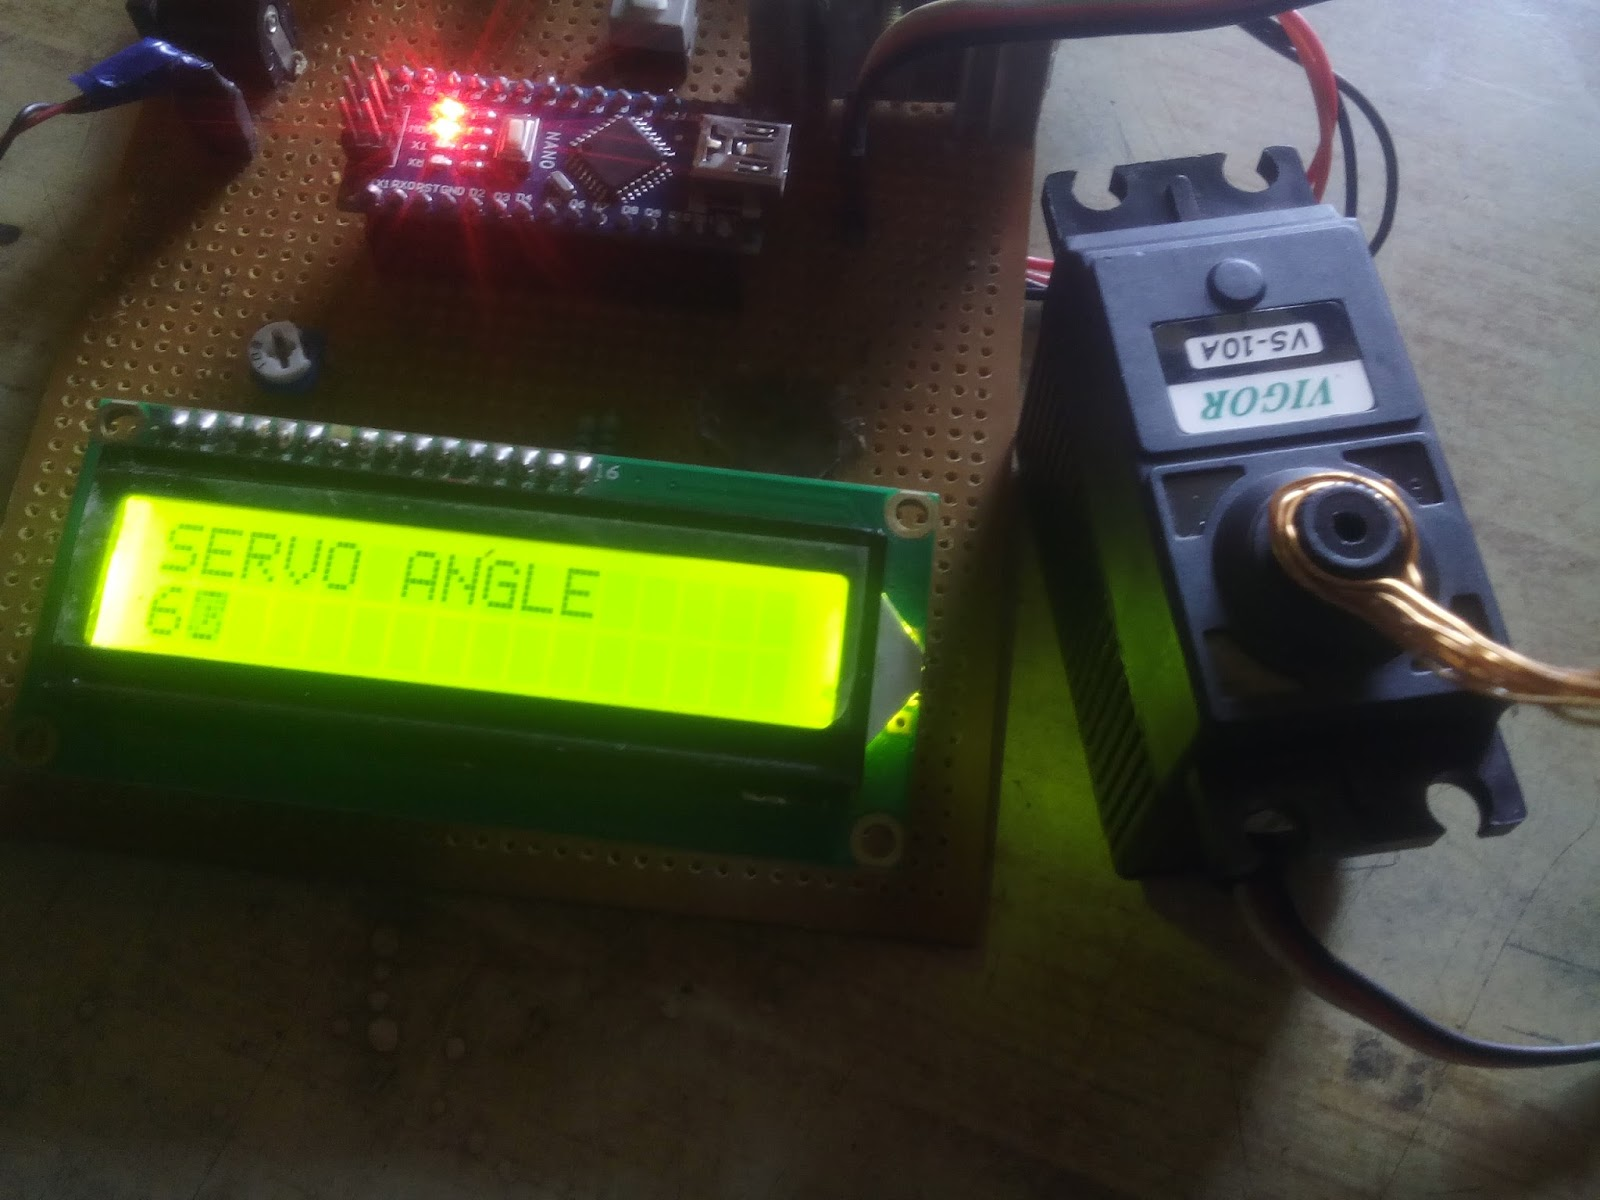 Arduino Servo Test with LCD Display